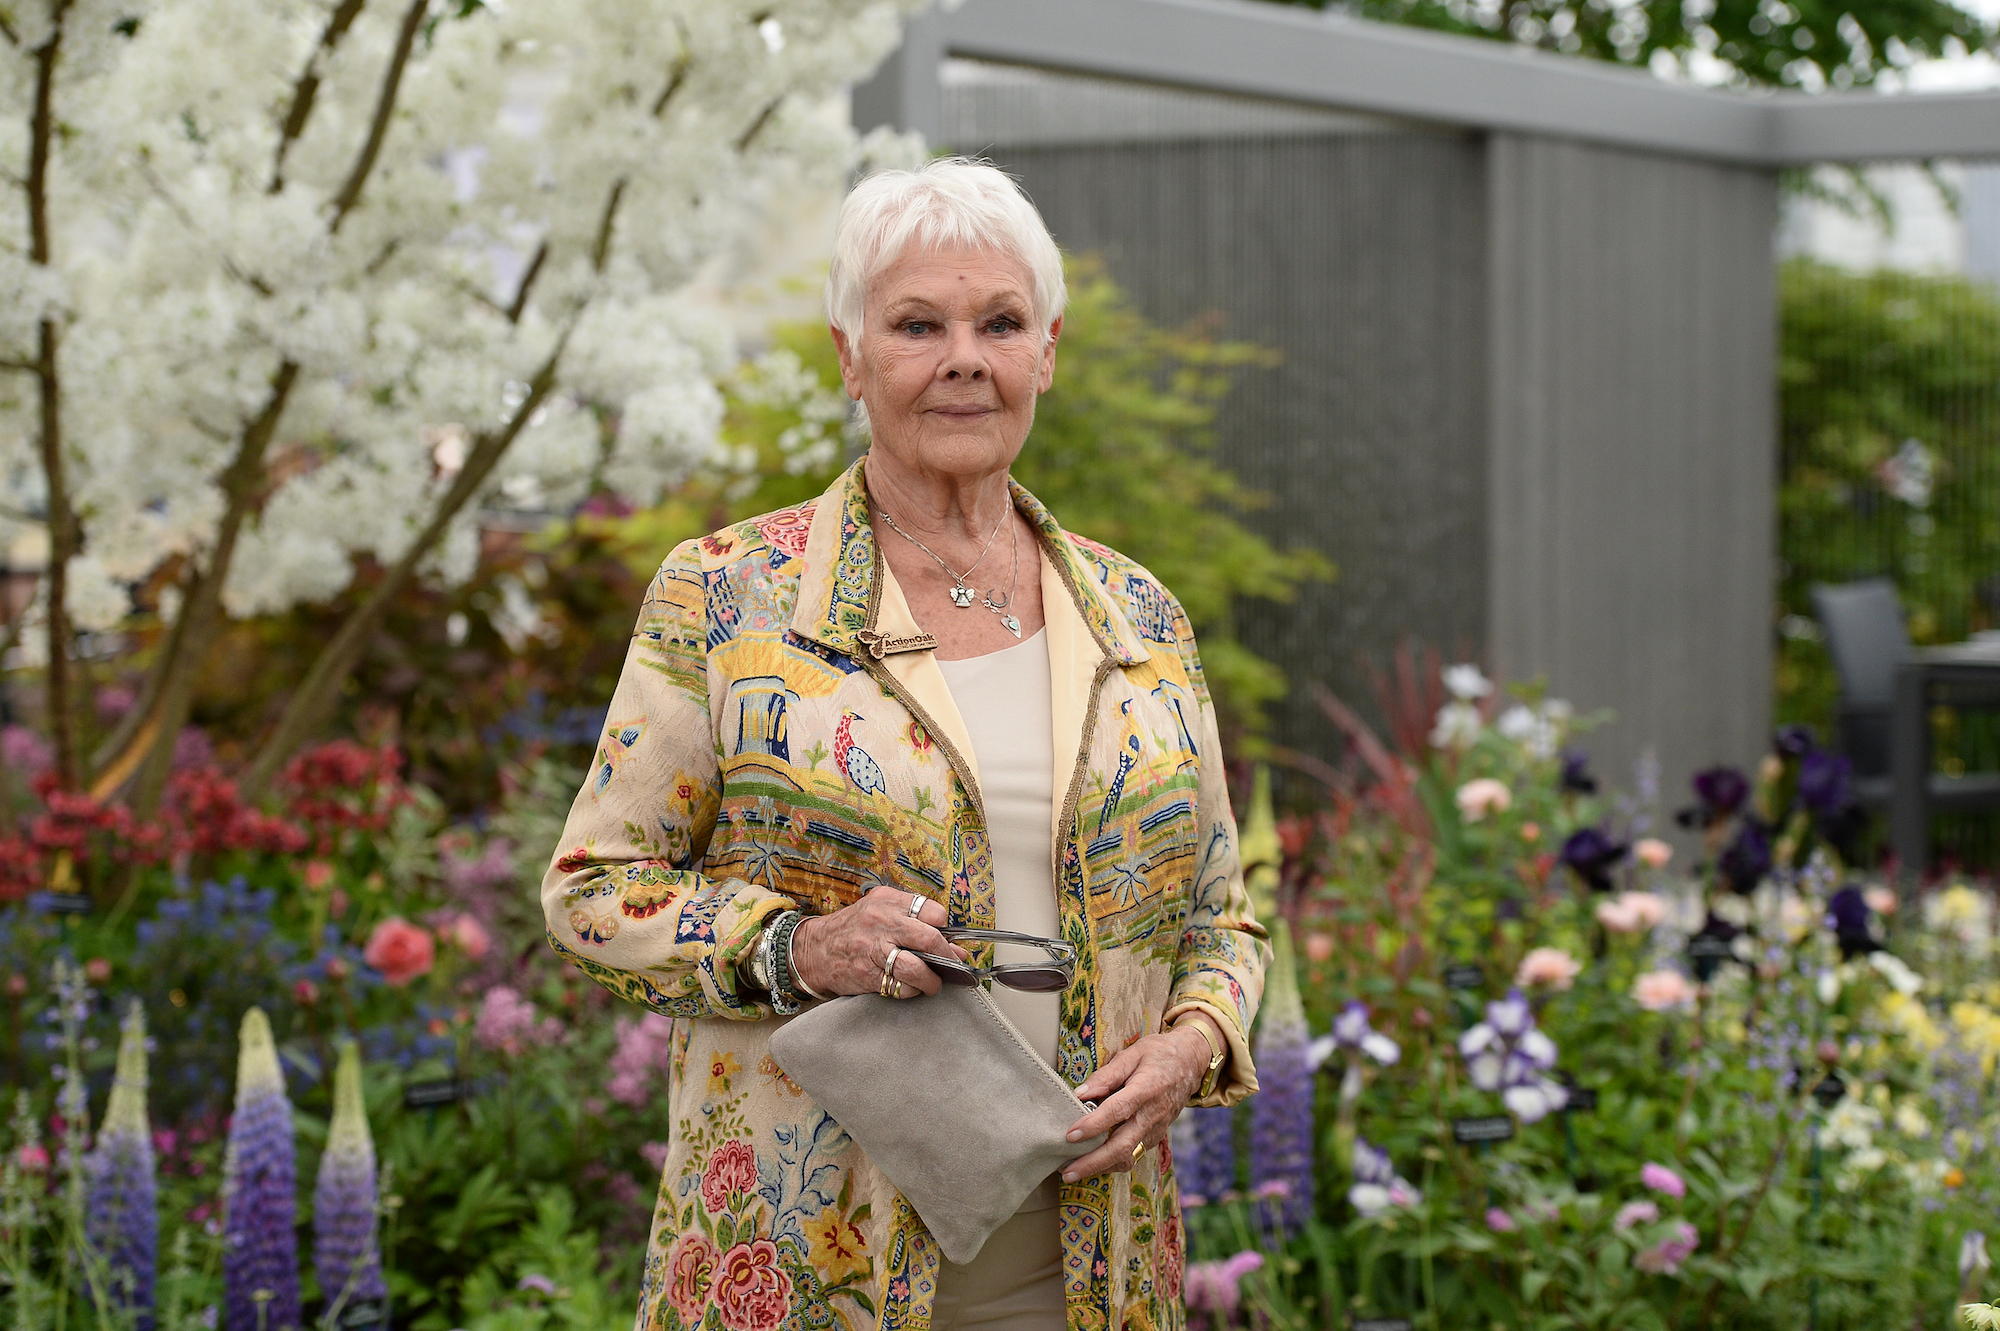 Judi Dench Won An Oscar In Only 8 Minutes Of Screen Time